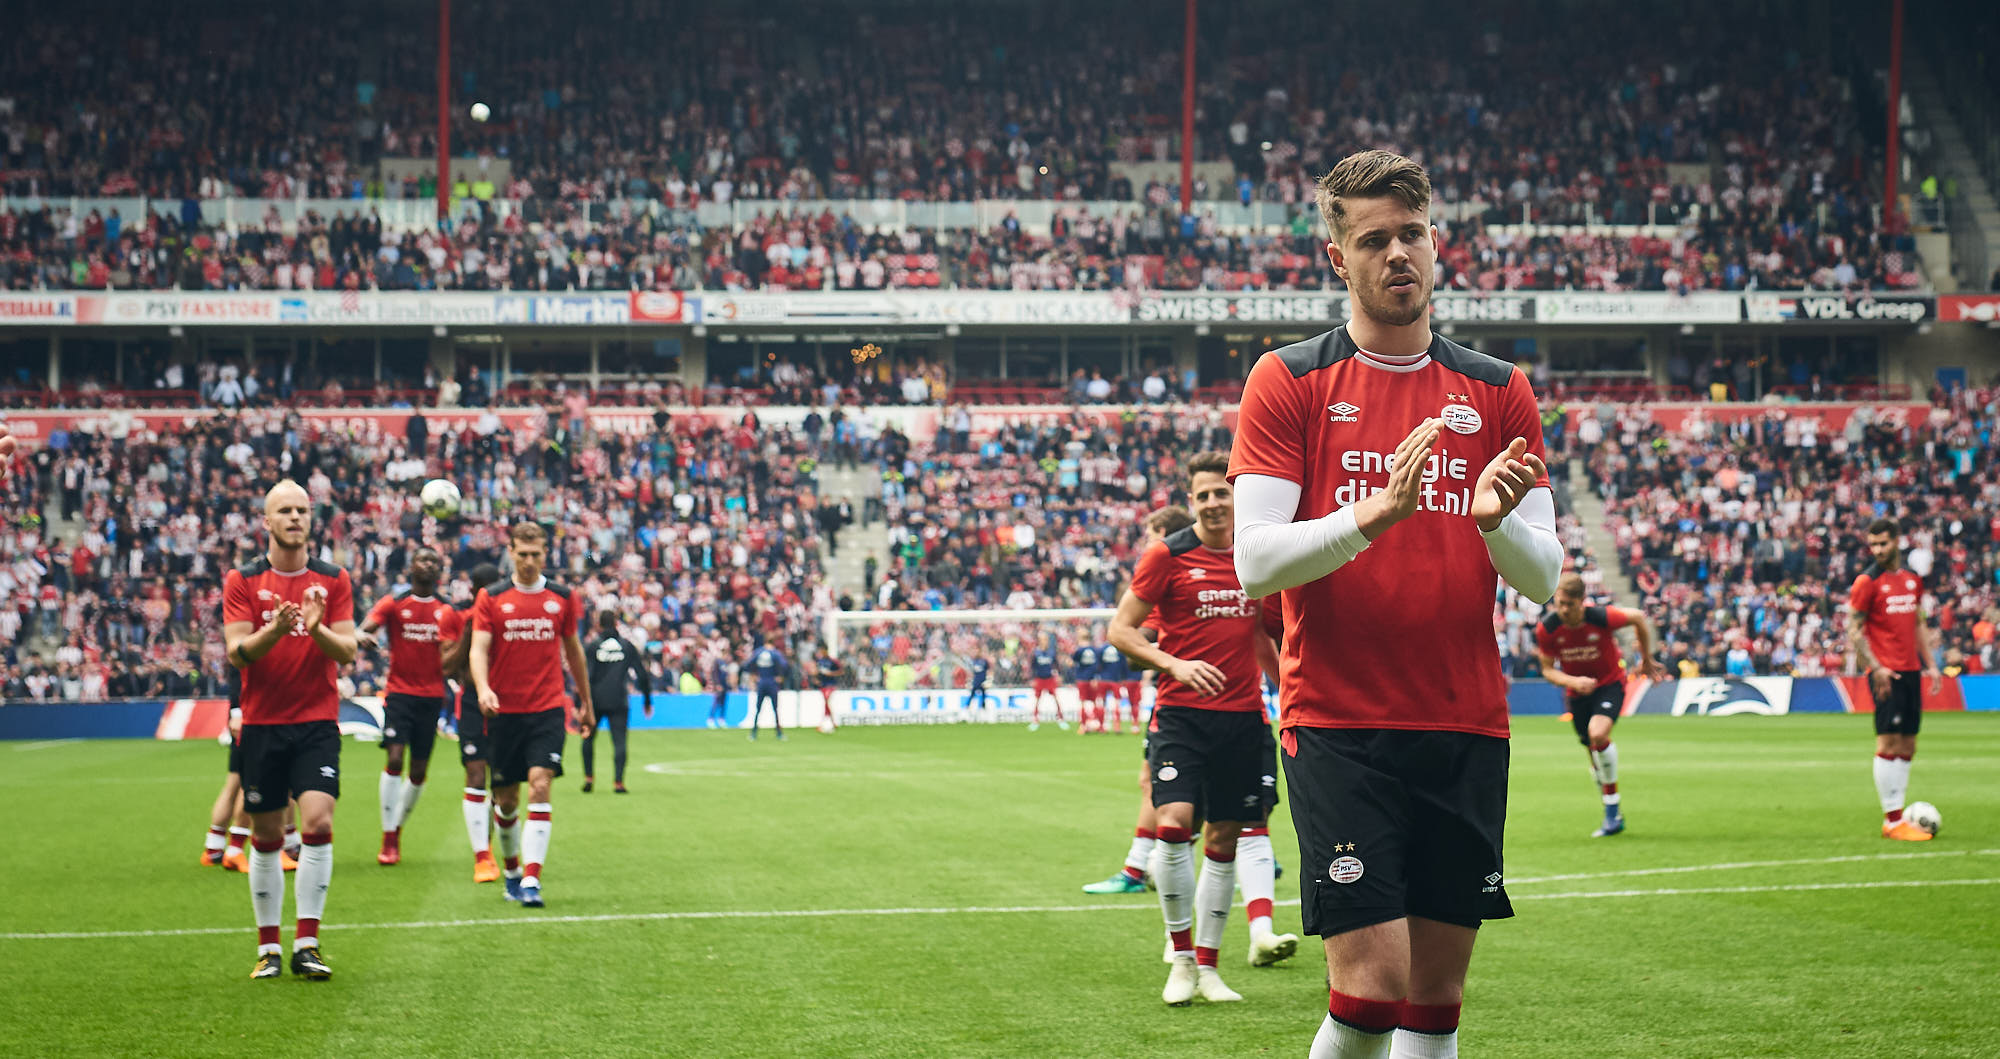 Football player Marco van Ginkel during warm-up for PSV Eindhoven